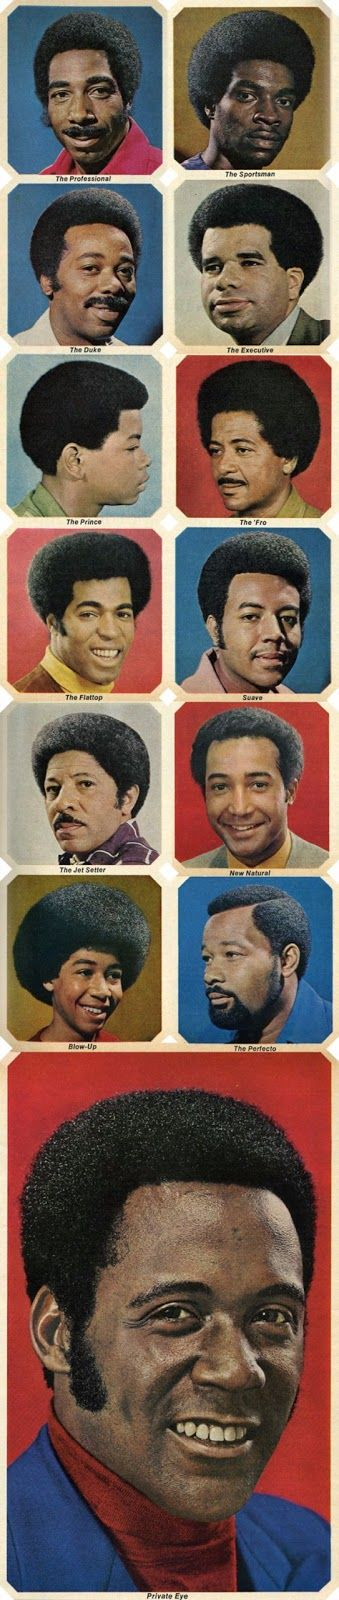 The Range Of Afro Hairstyles For Black Men In The 1970s Vintage